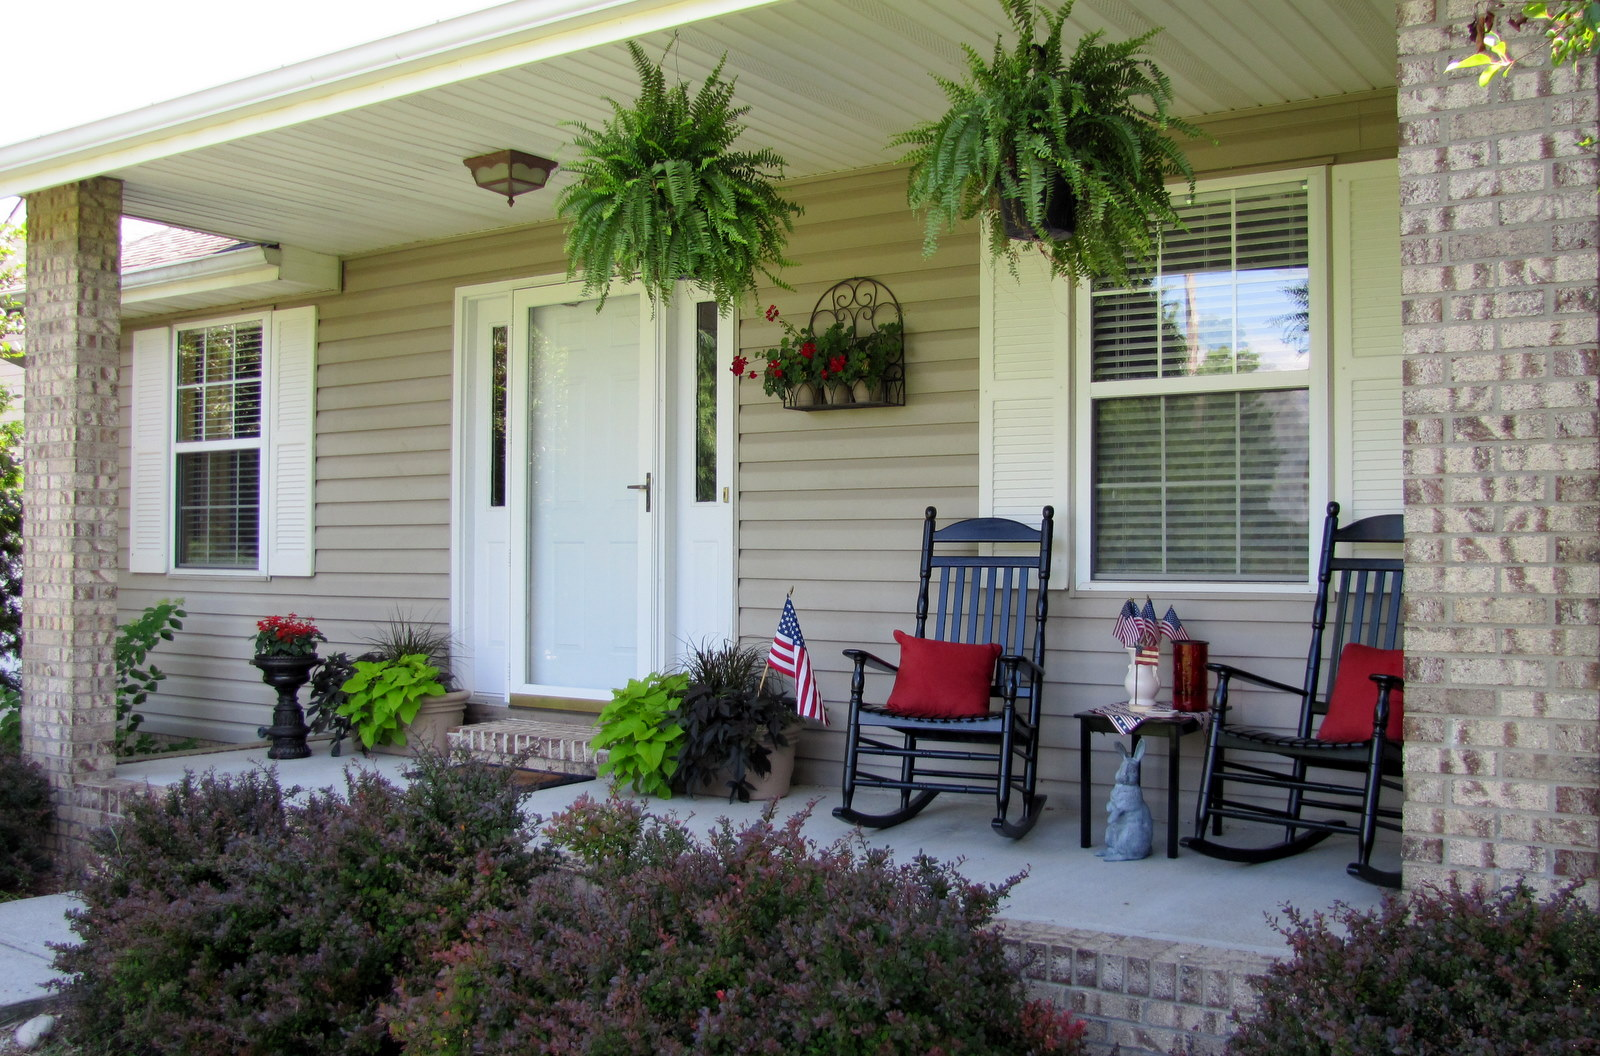 301 moved permanently Front veranda decorating ideas